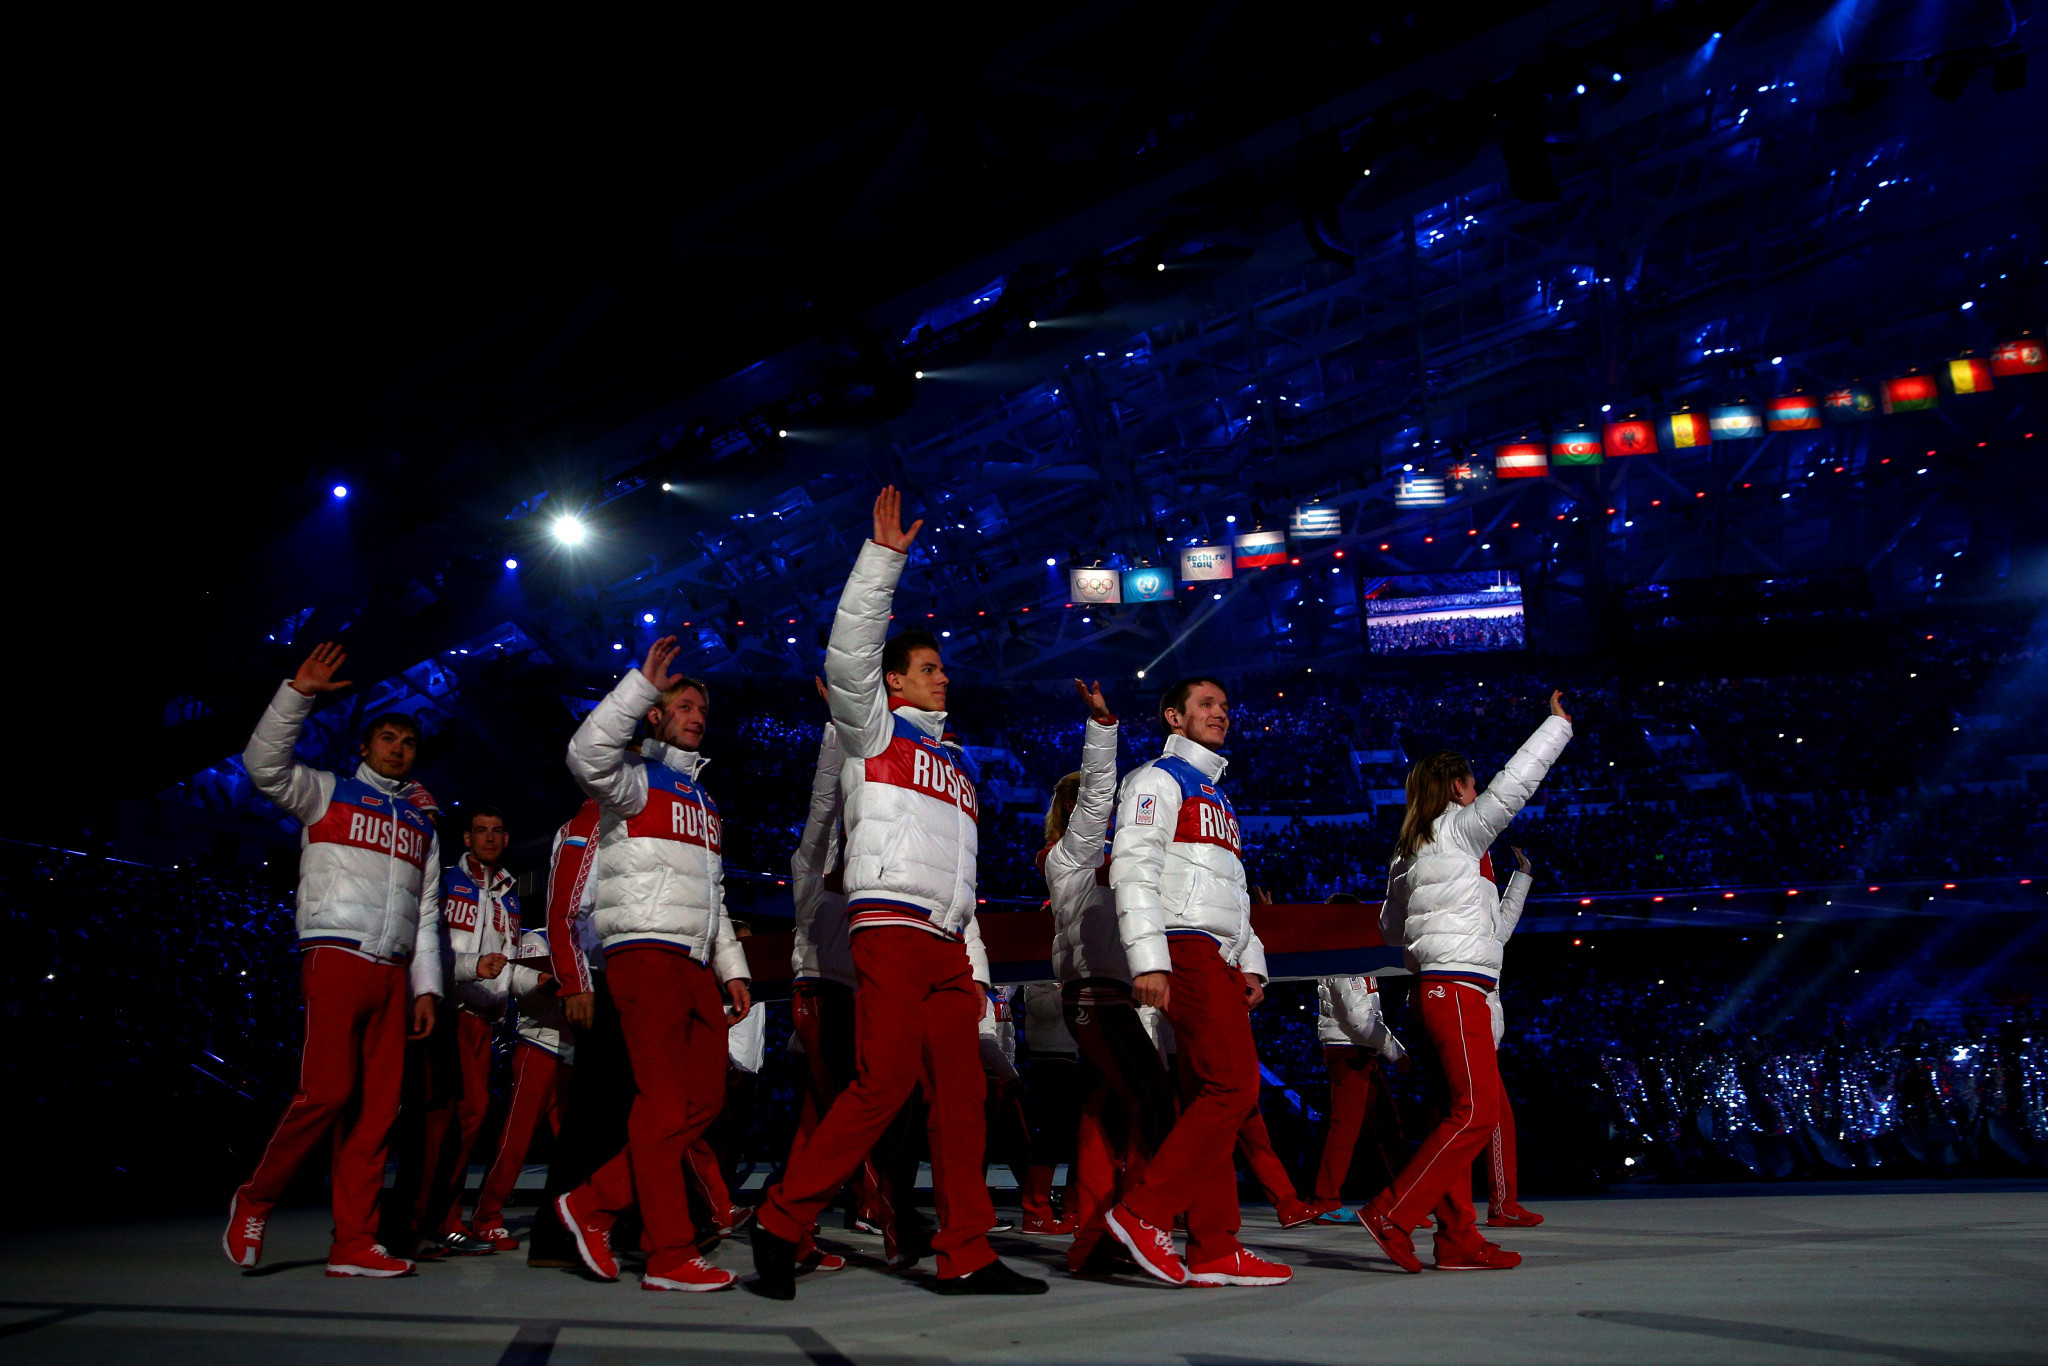 Russia have been knocked off the top of the Sochi 2014 Olympic medal standings following the sanctioning of athletes by the International Olympic Committee for doping at the Games ©Getty Images